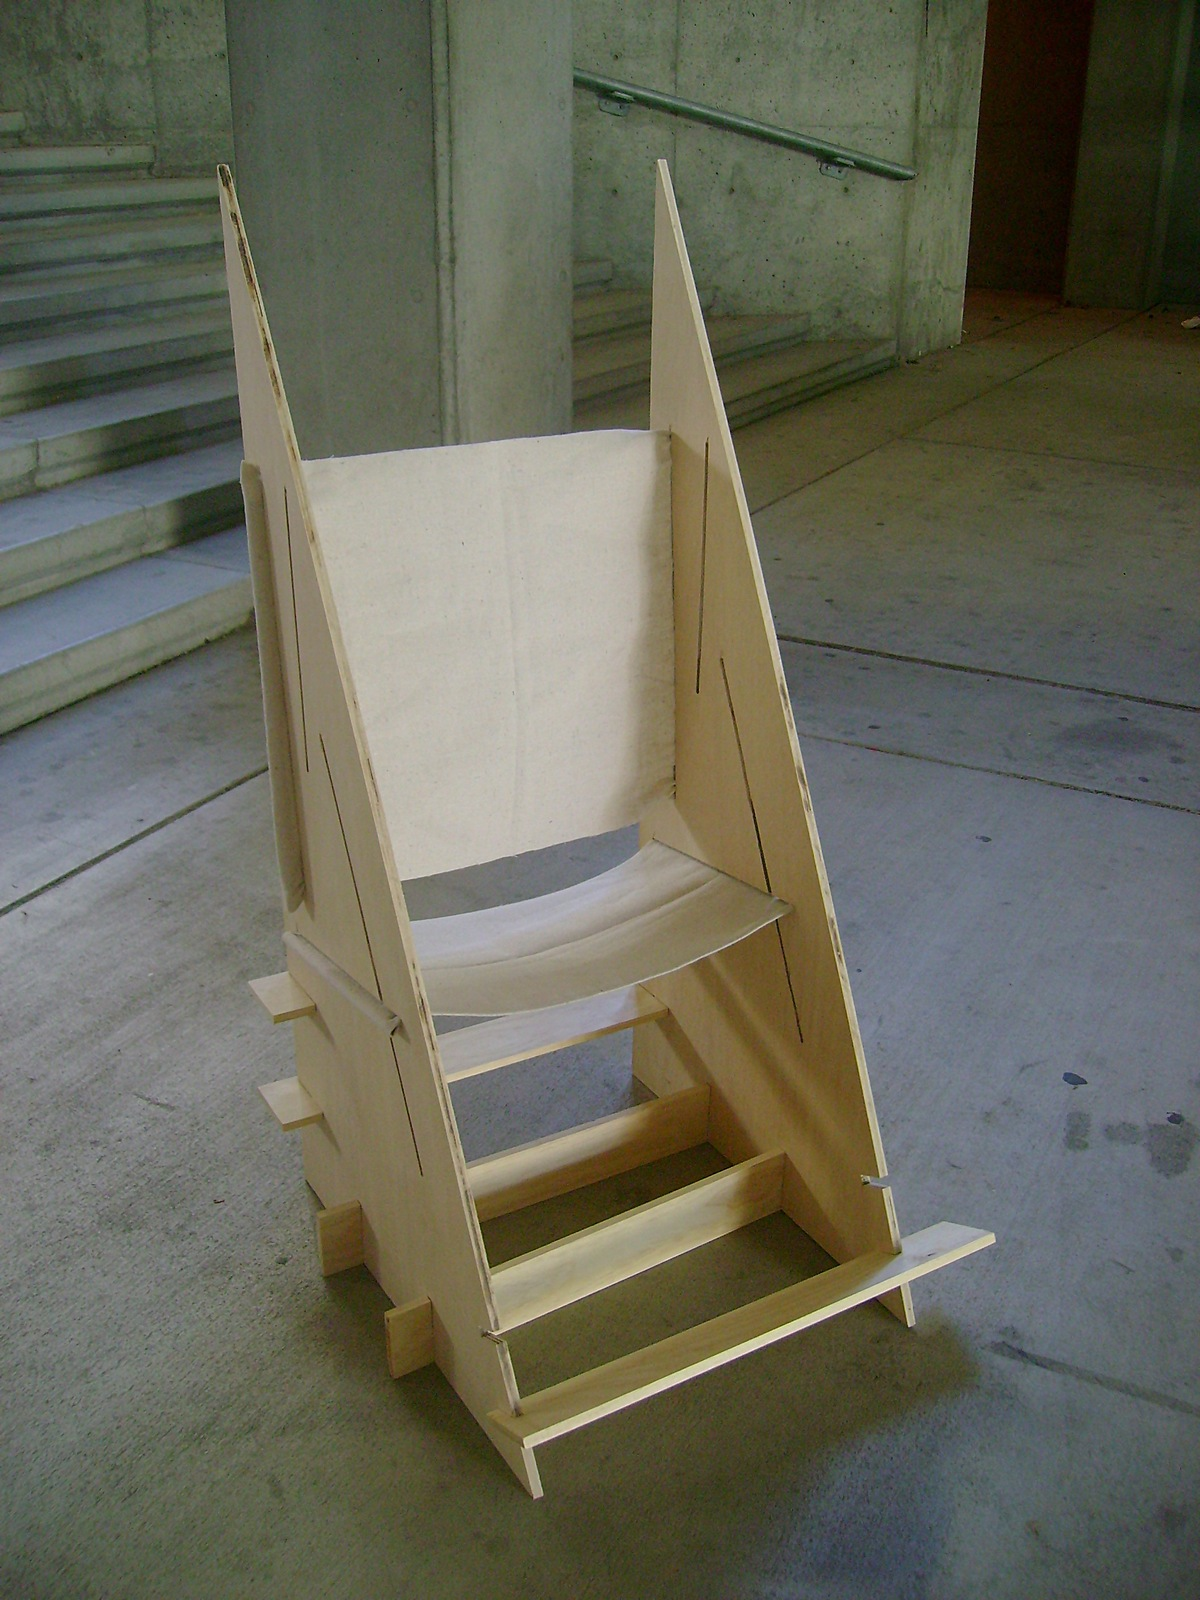 flip flop chair log high vellum competition amy chan archinect